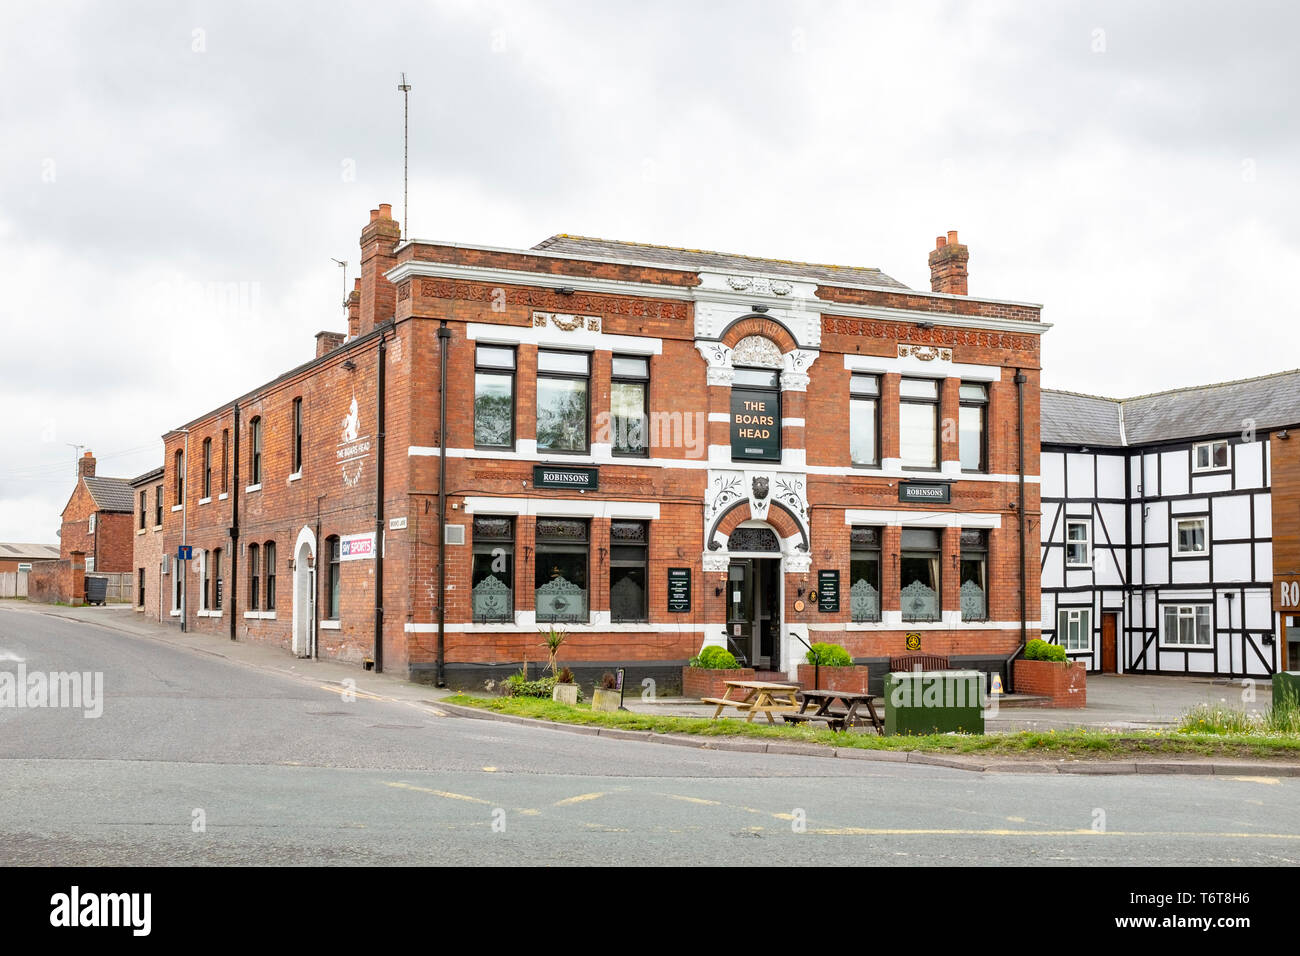 The Boars Head hotel in Middlewich Cheshire UK - Stock Image